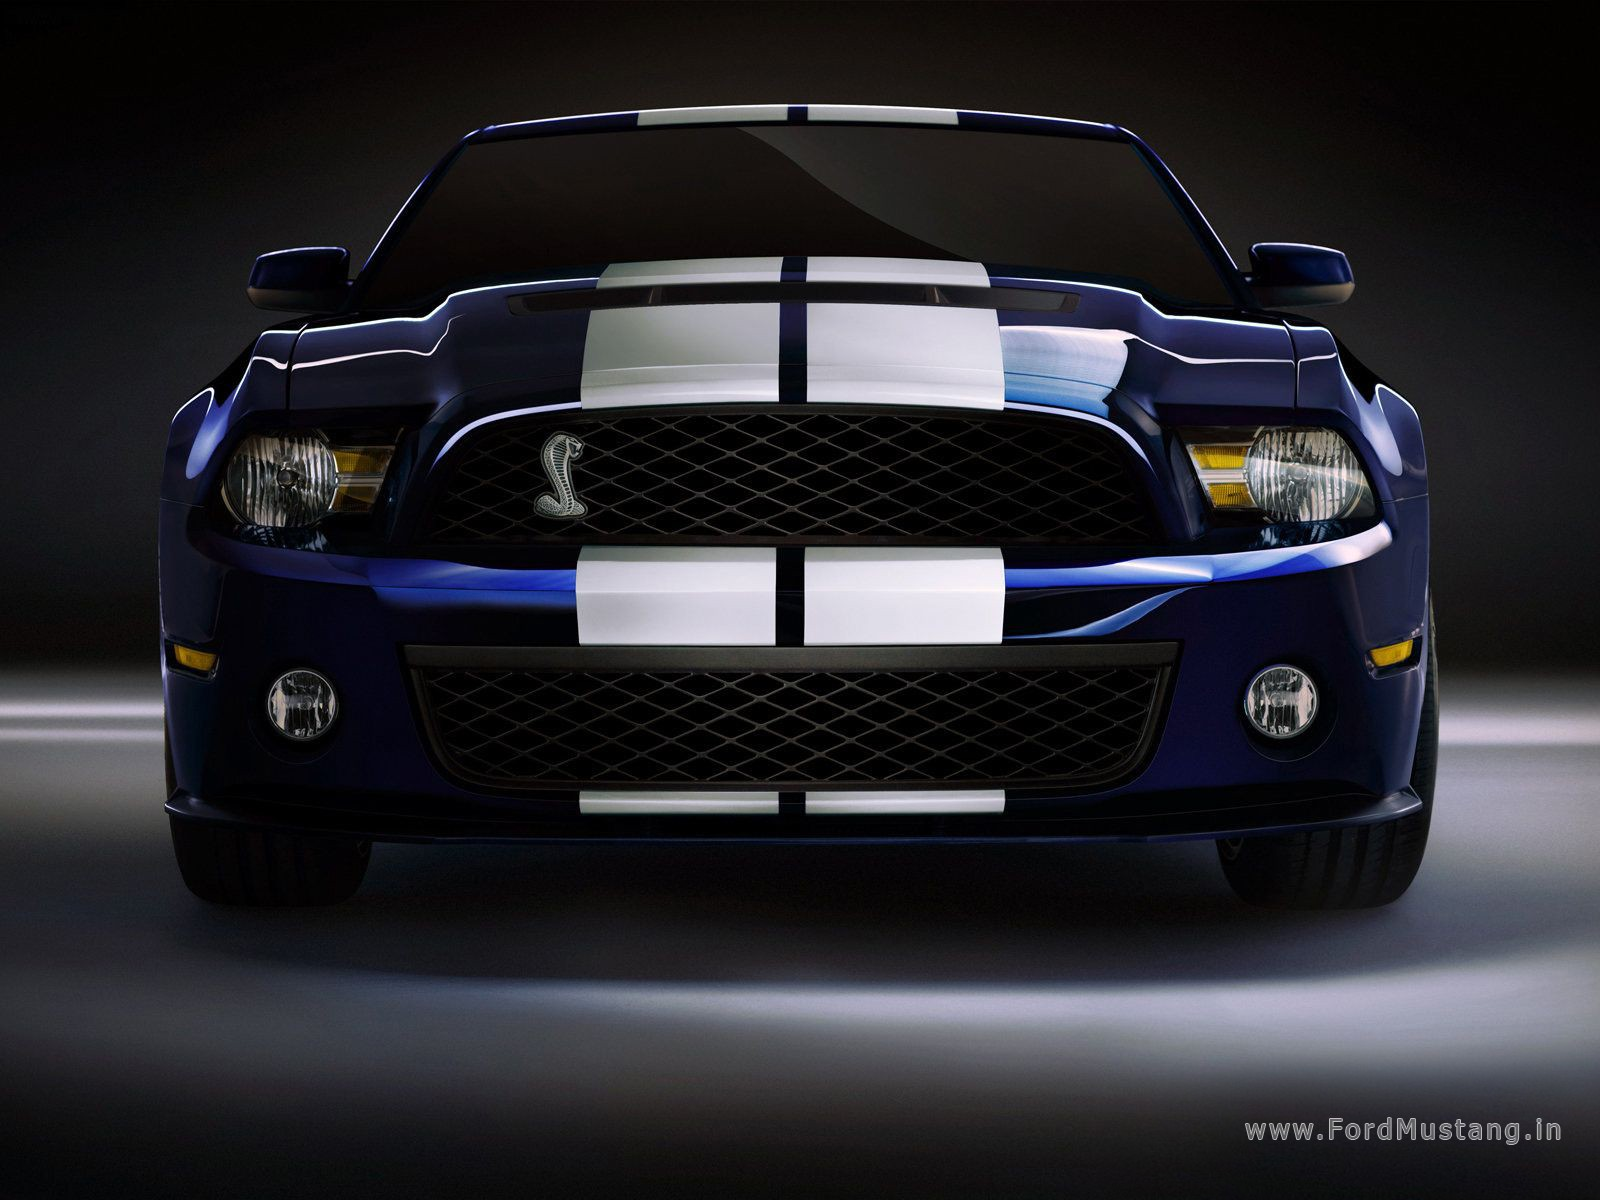 Ford Mustang Shelby Gt500 2010 Wallpapers Ford Mustang